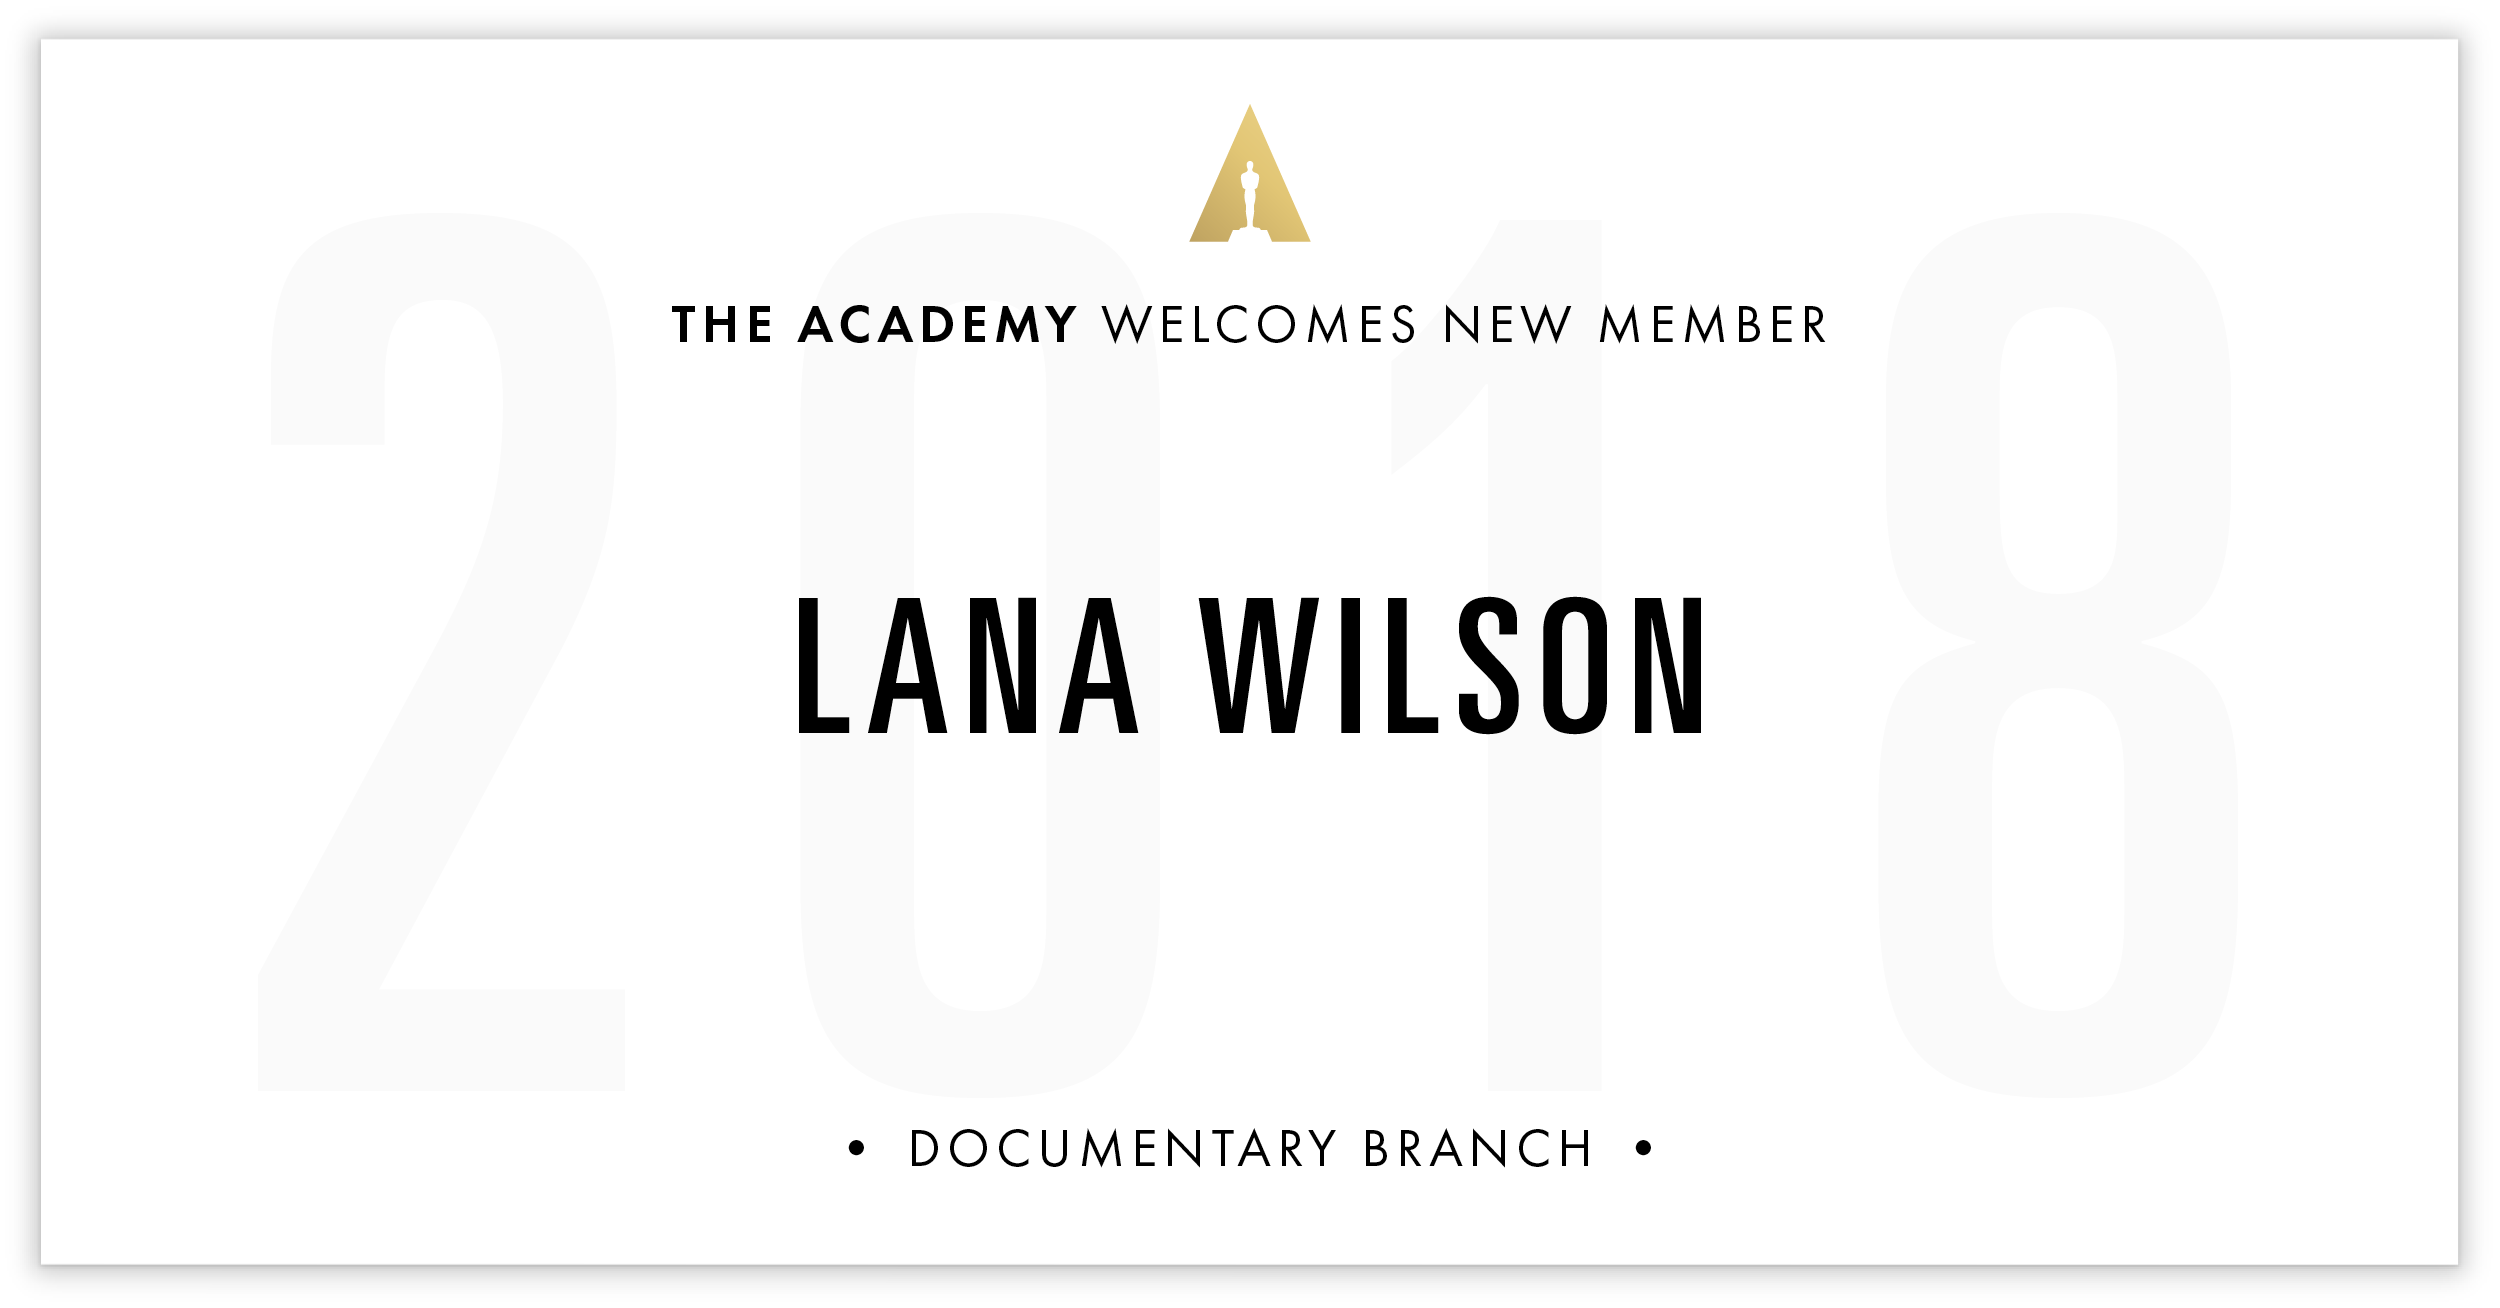 Lana Wilson is invited!